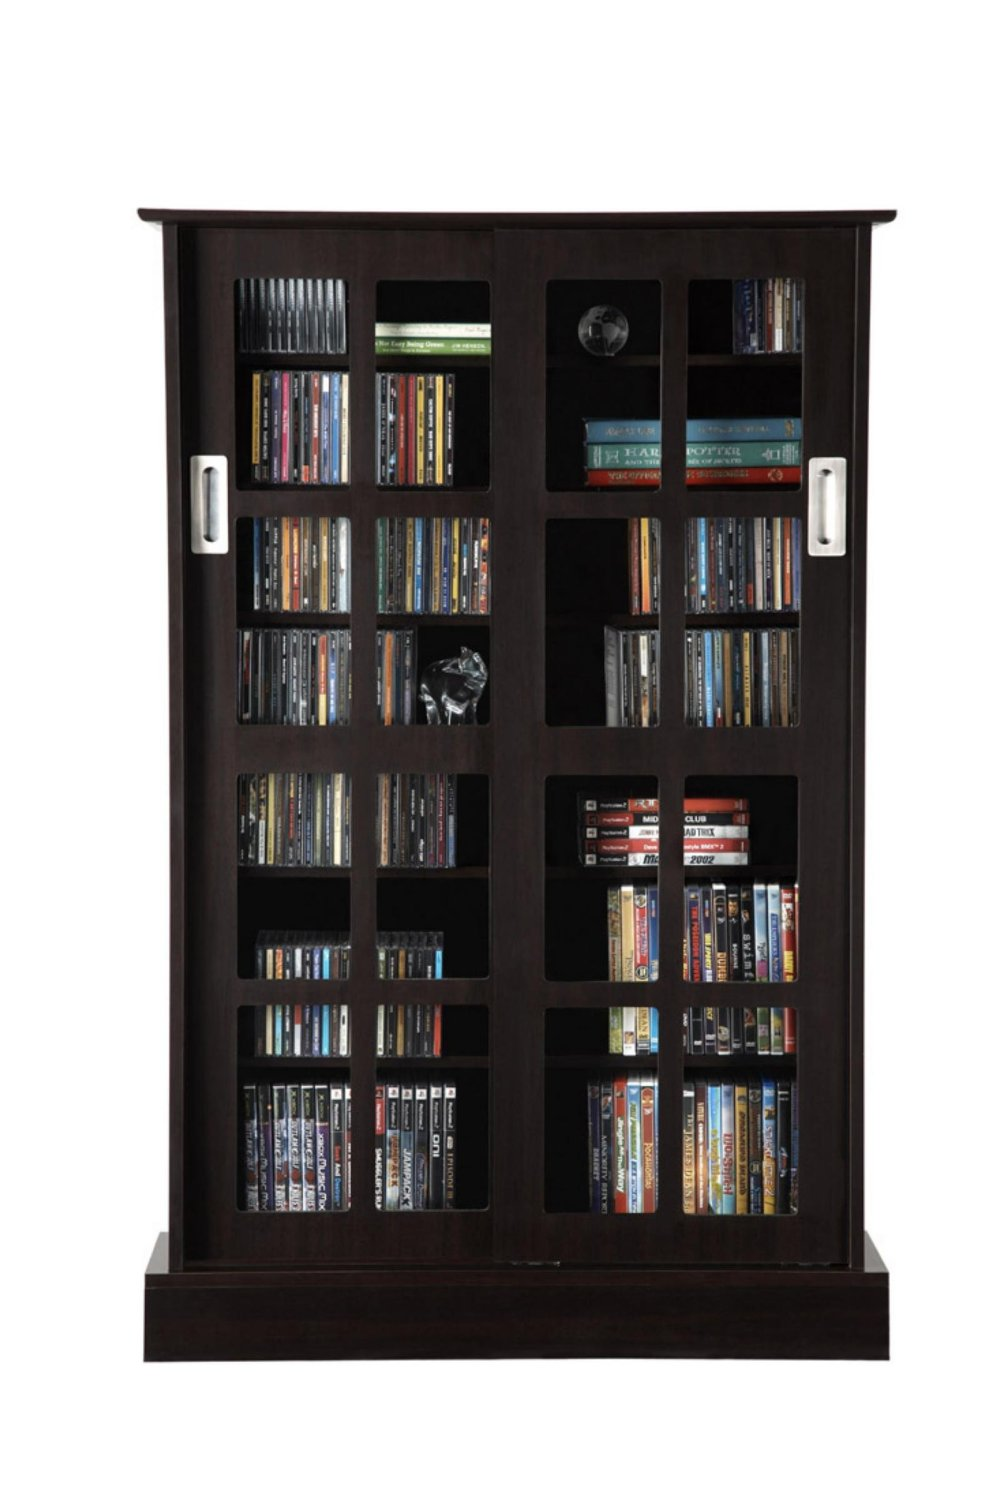 Atlantic 22135624 Windowpane Sliding Glass Door Cabinet, 576 cd/92 DVD, Expresso, P1 (Discontinued by Manufacturer)